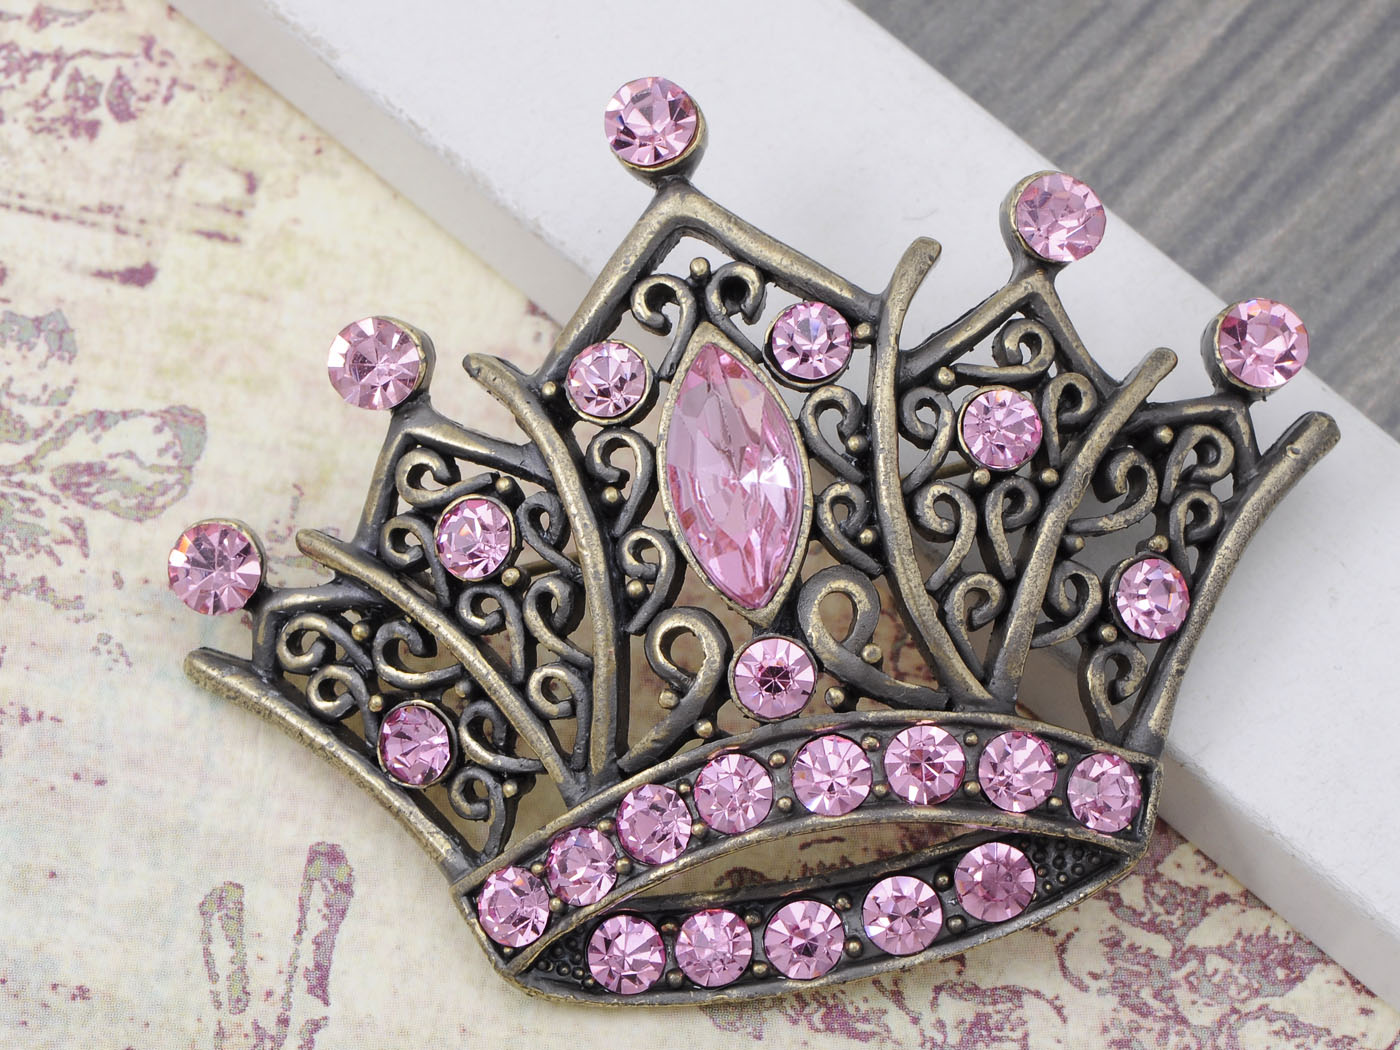 Vintage Crystal Princess Queen King Crown Fashion Jewelry power women Brooch Pin